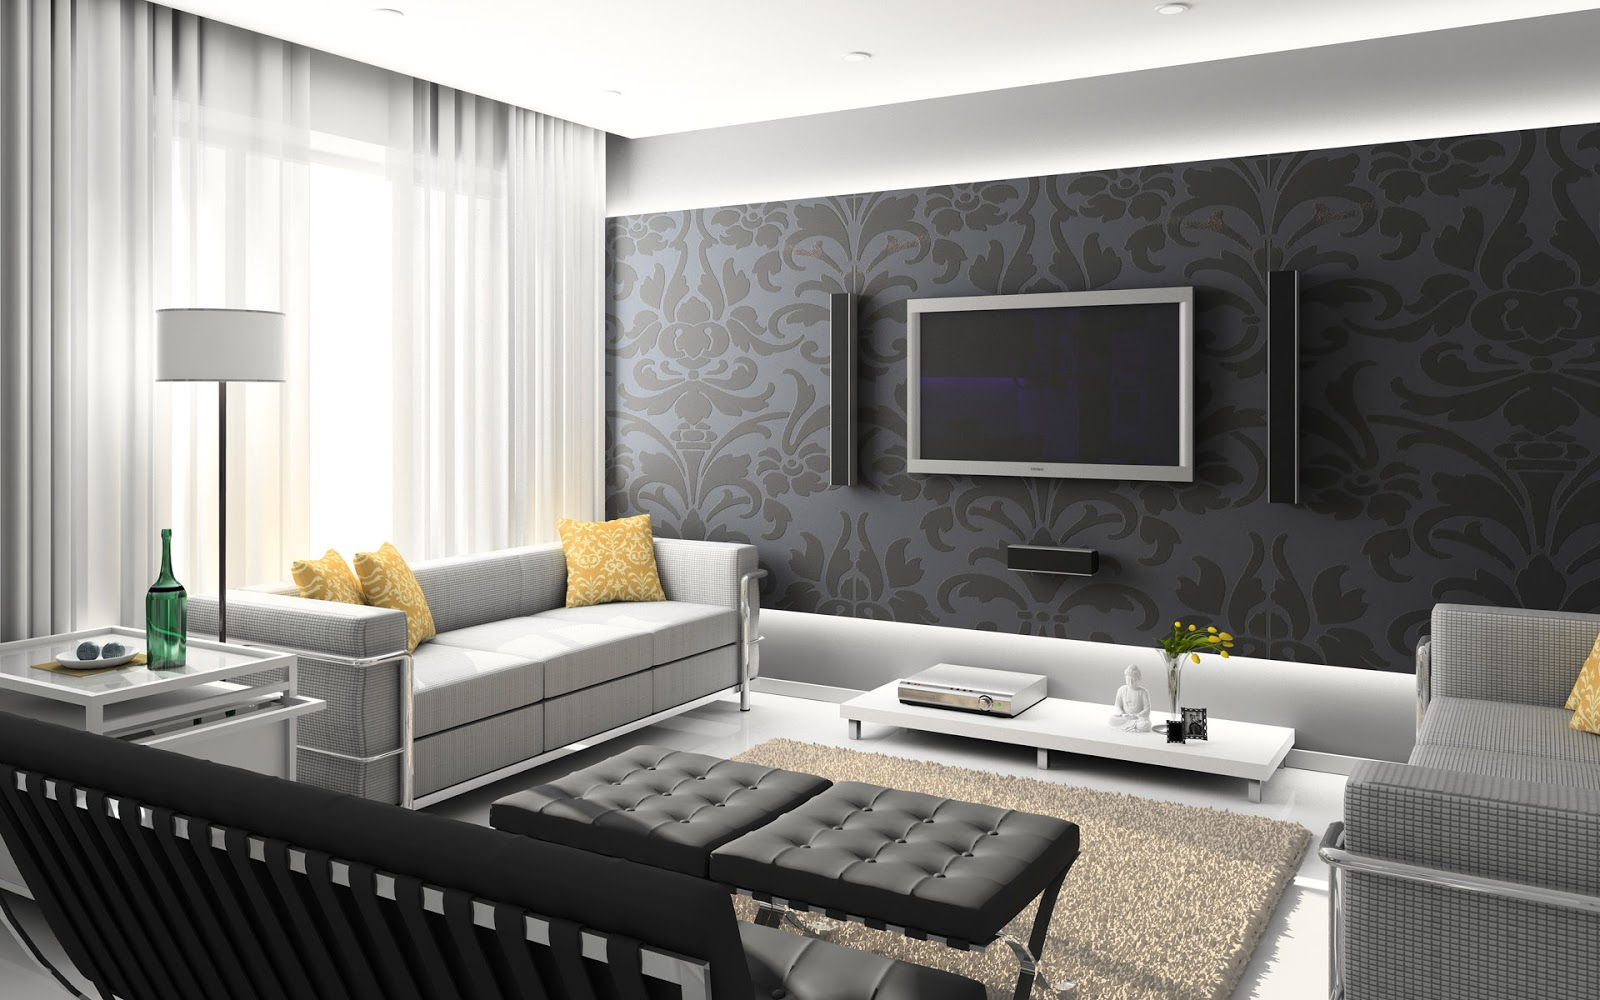 Wallpaper For Home Interiors Re Decorating Ideas